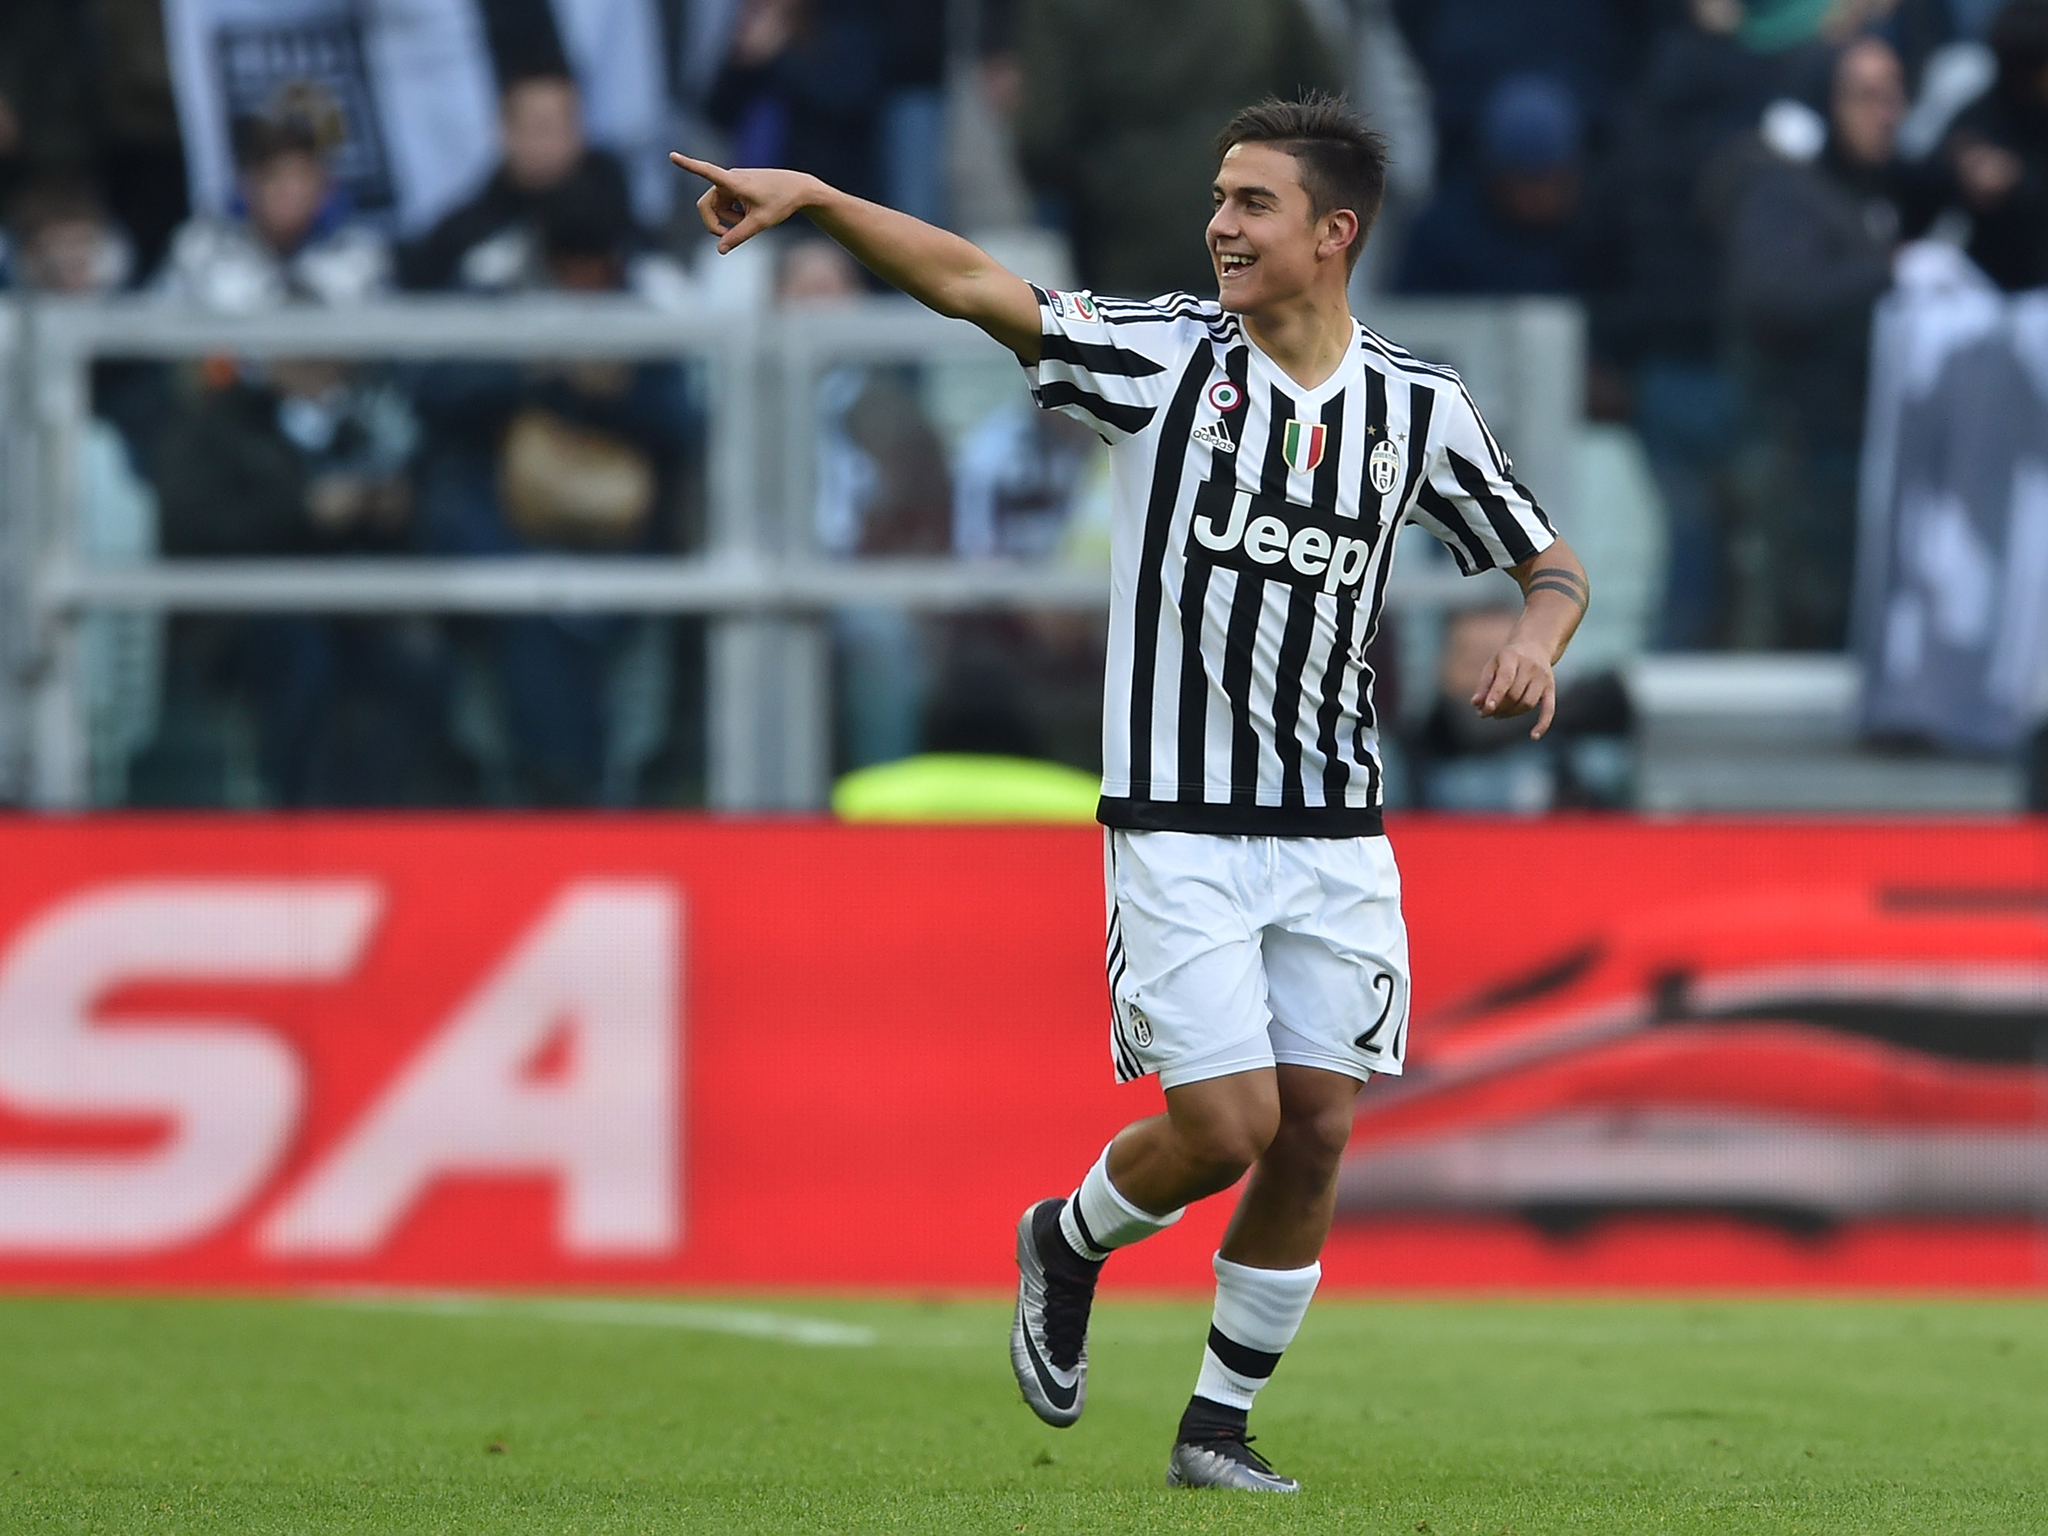 Dybala Goes Big at Only 23 - TSM PLUG